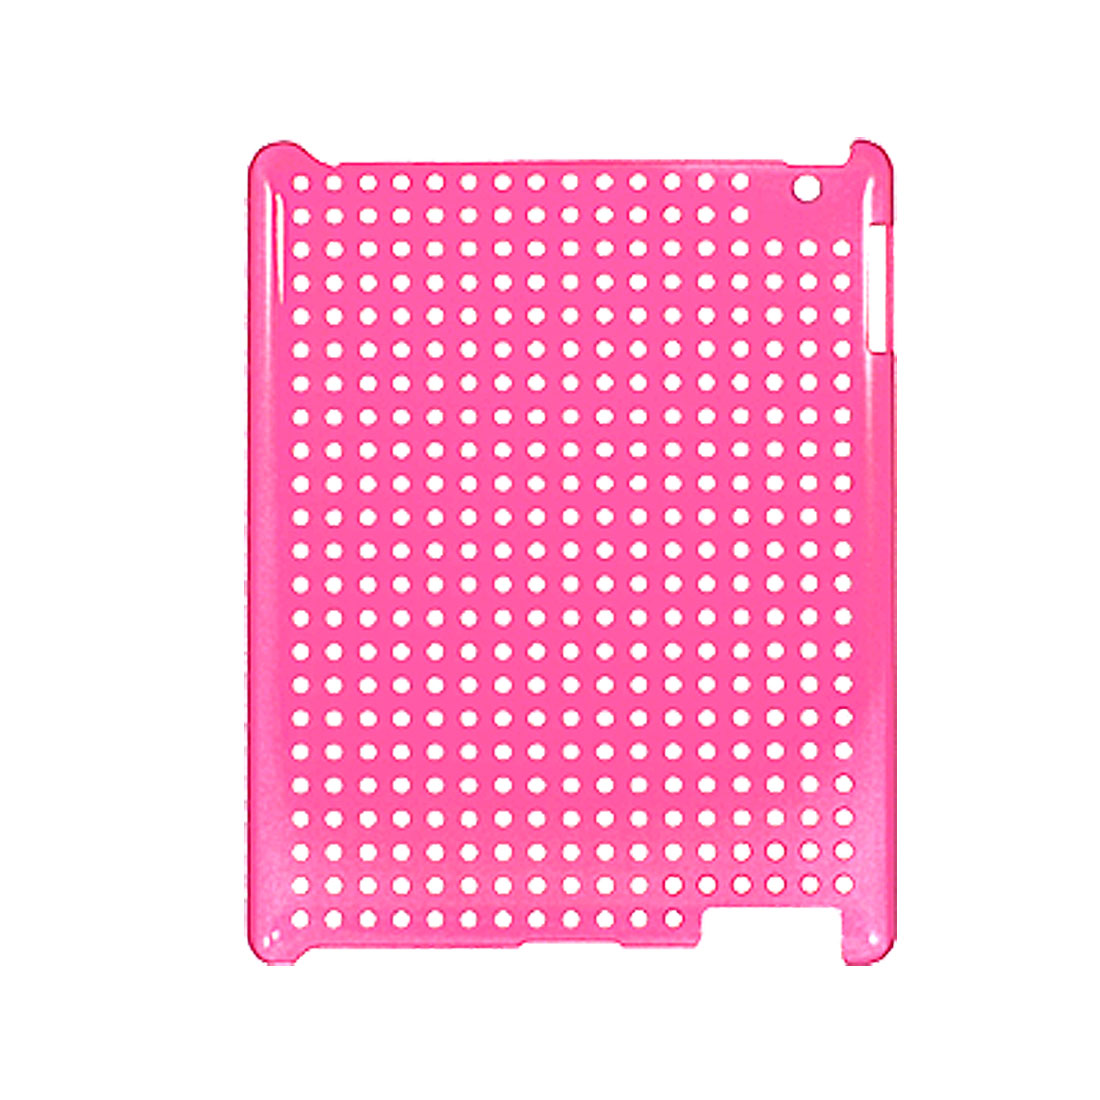 Hard Plastic Cut out Circles Hot Pink Back Cover for iPad 2 2G